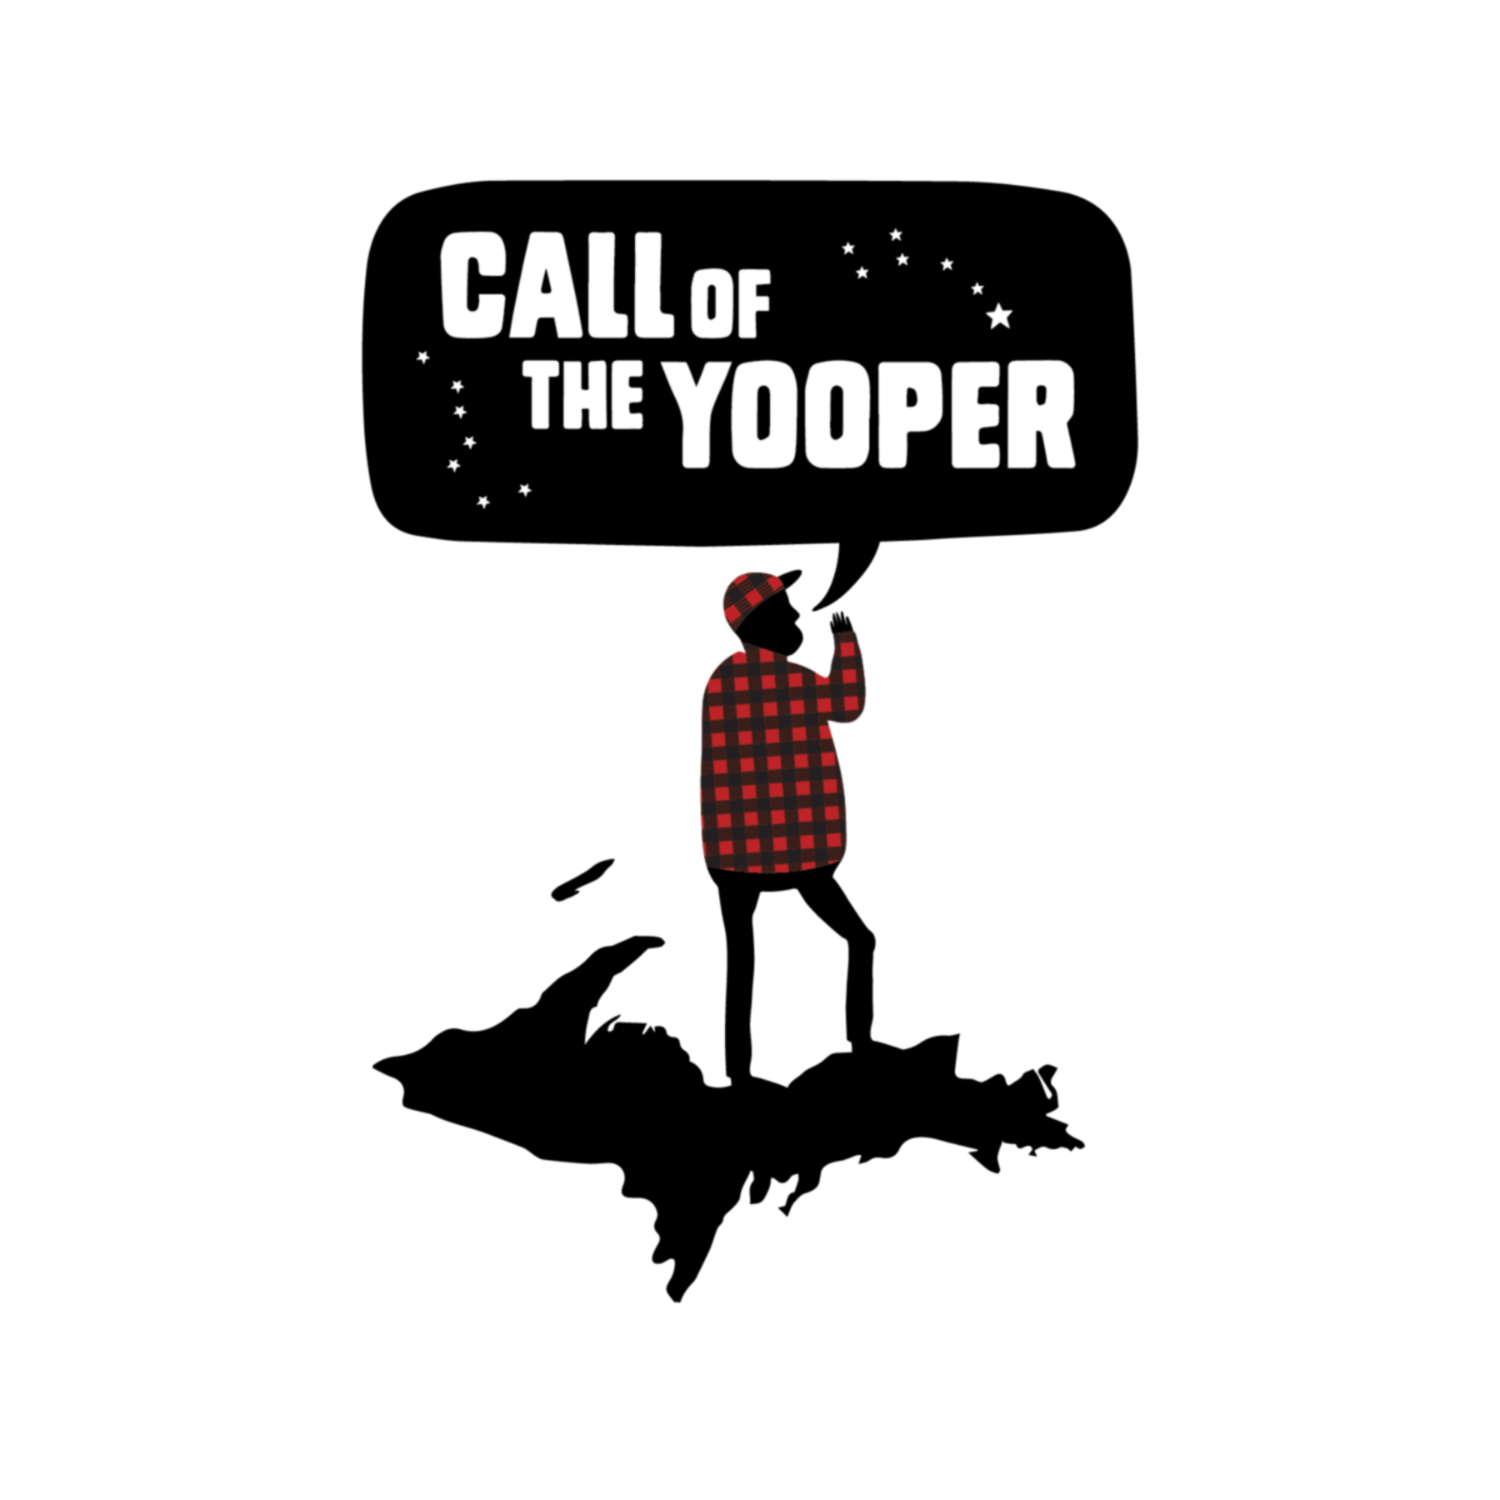 Call of the Yooper